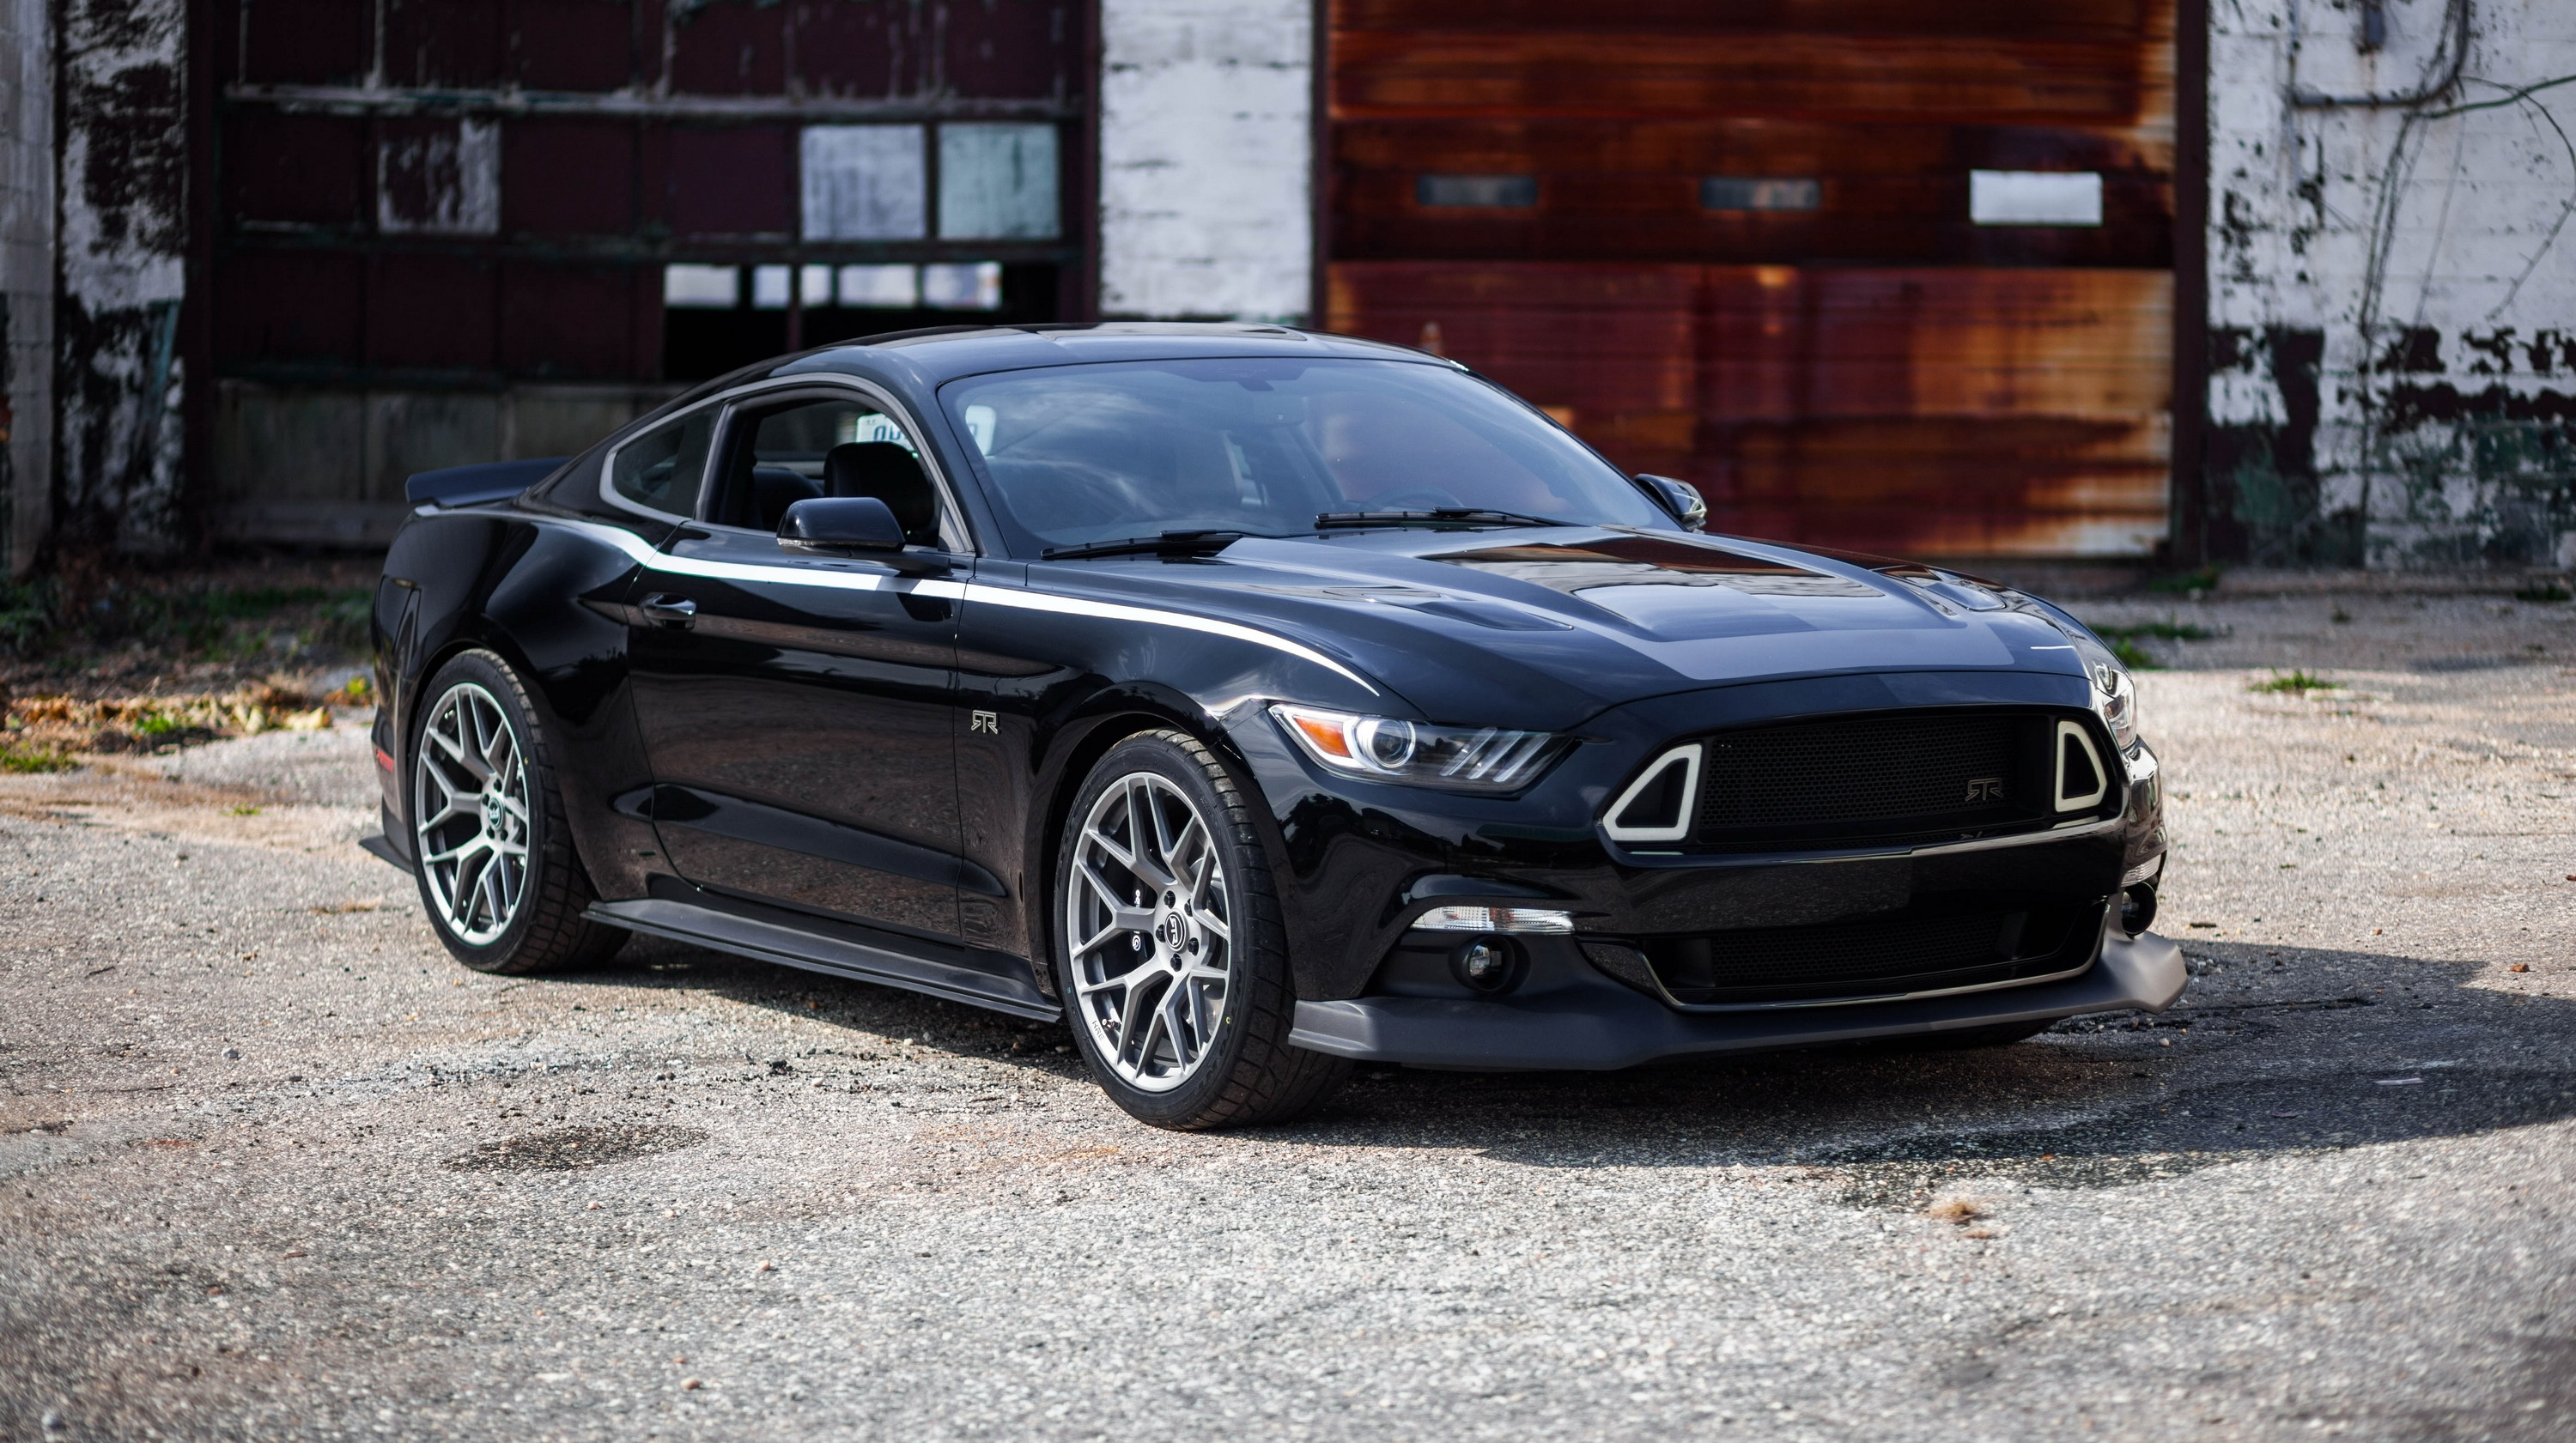 Ford Mustang Rtr Price